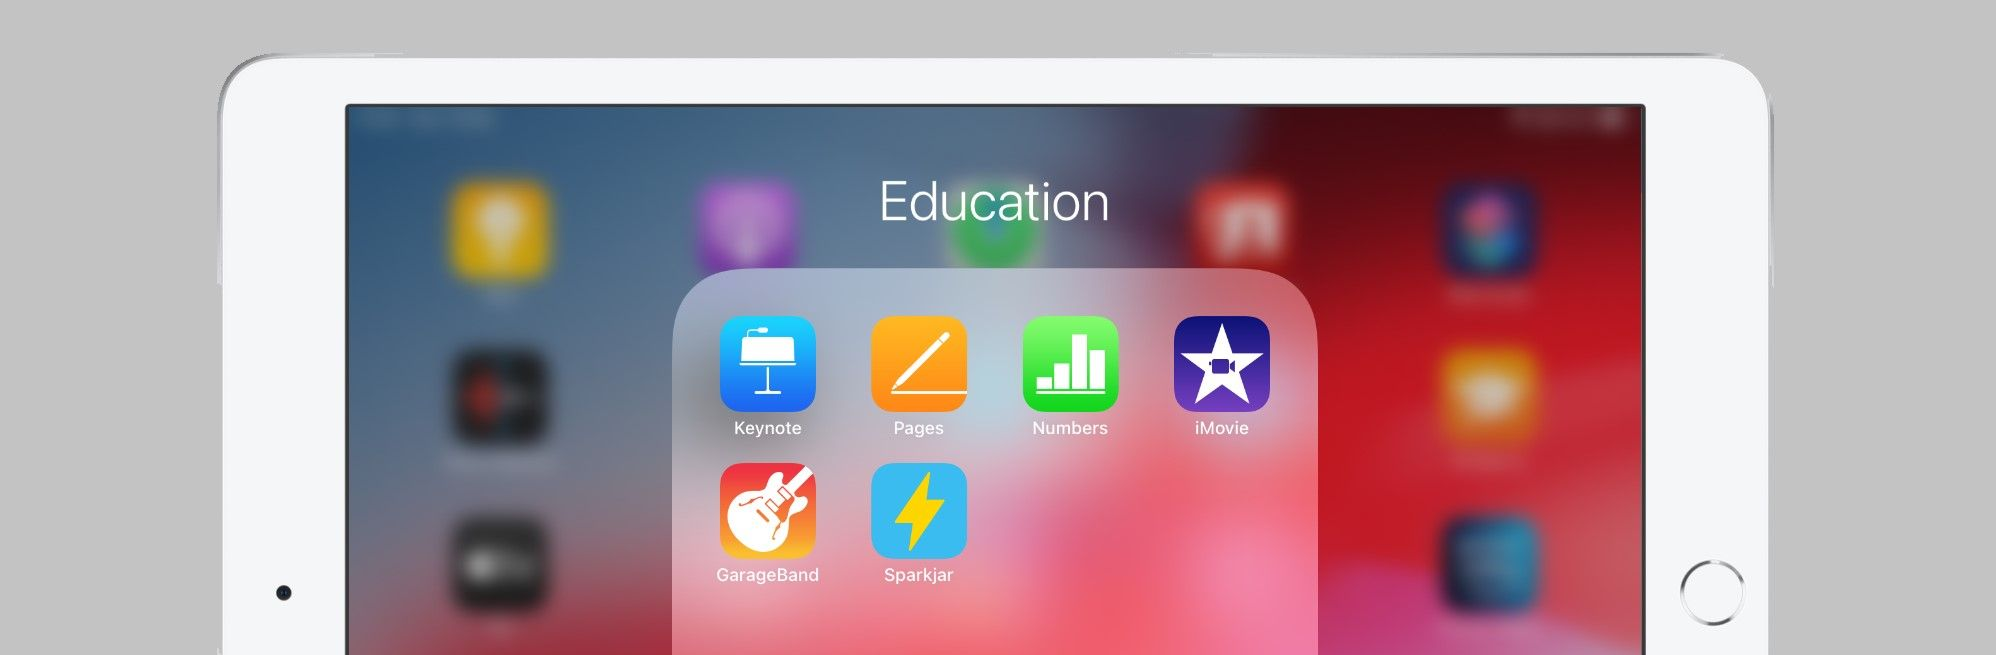 Education-apps-cropped-screen